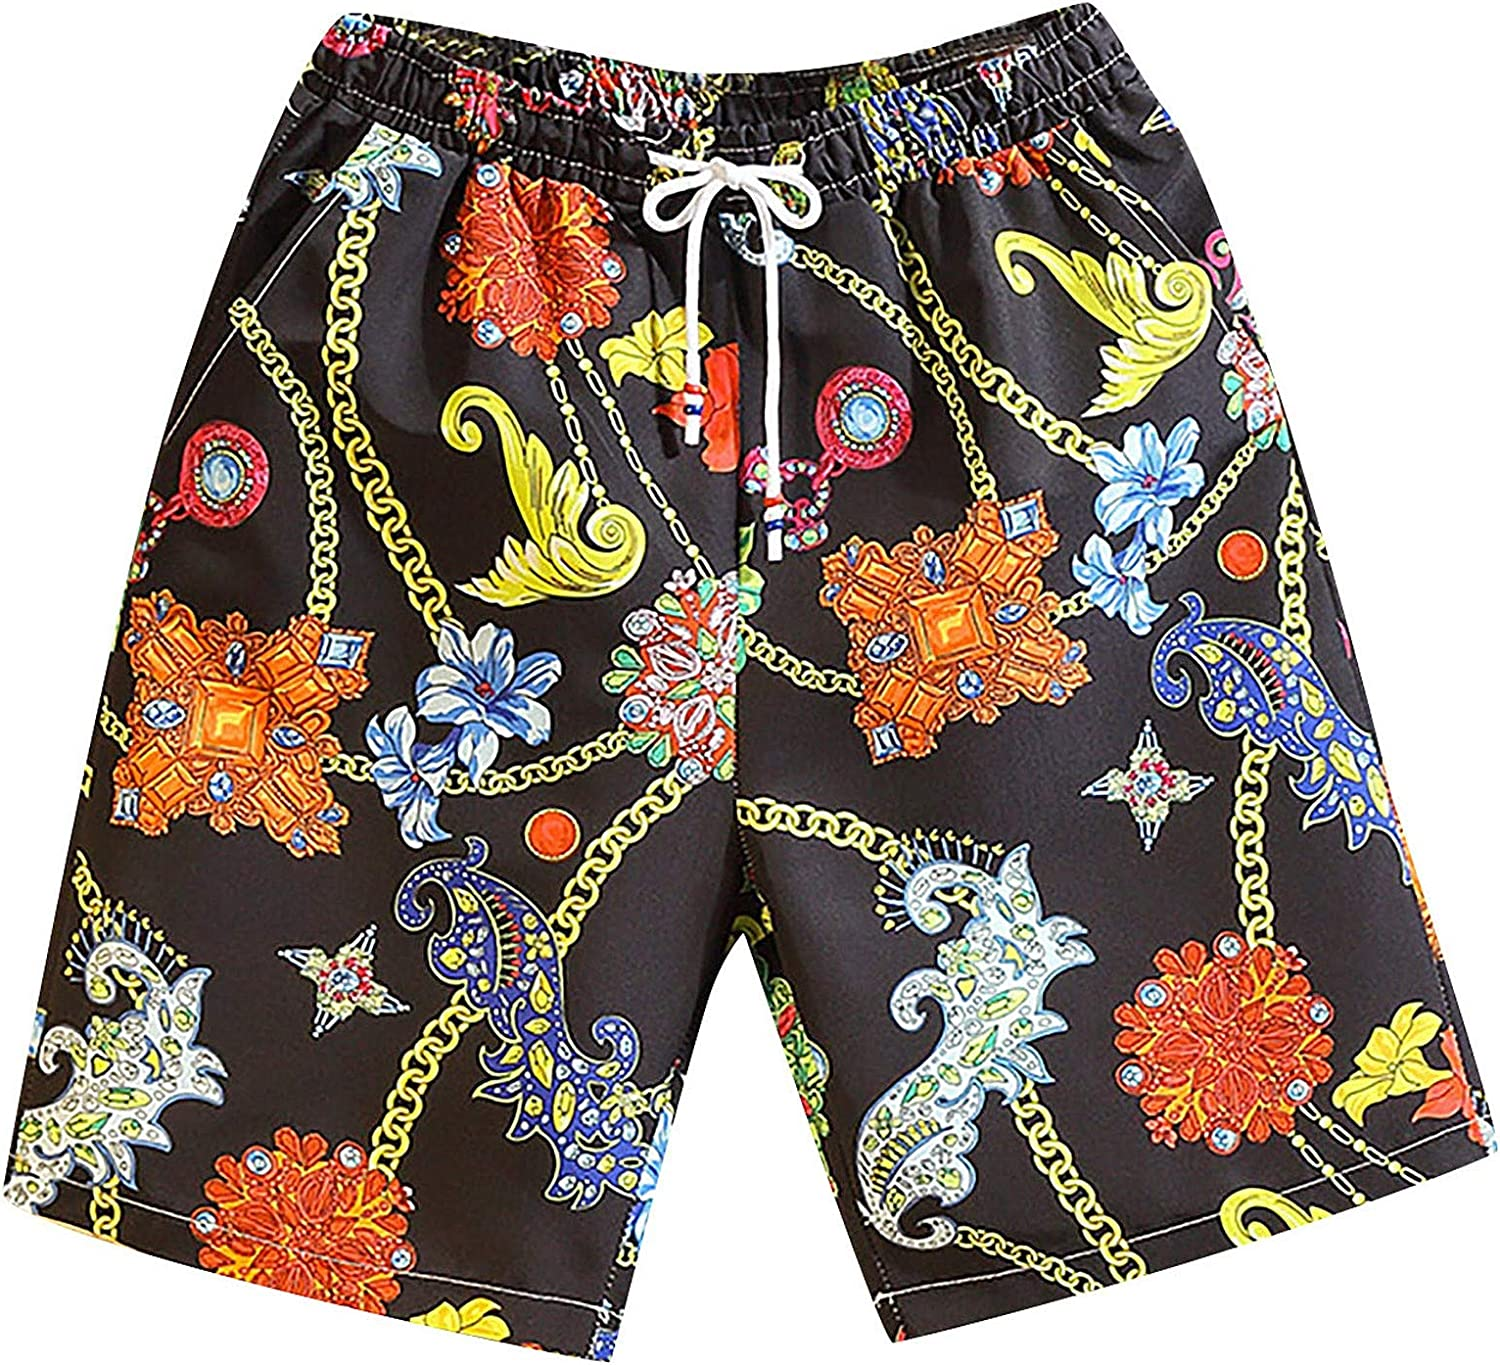 ZCAITIANYA Men's Summer Beach Shorts Printed Casual Drawstring Fitted Elastic Waist with Pockets